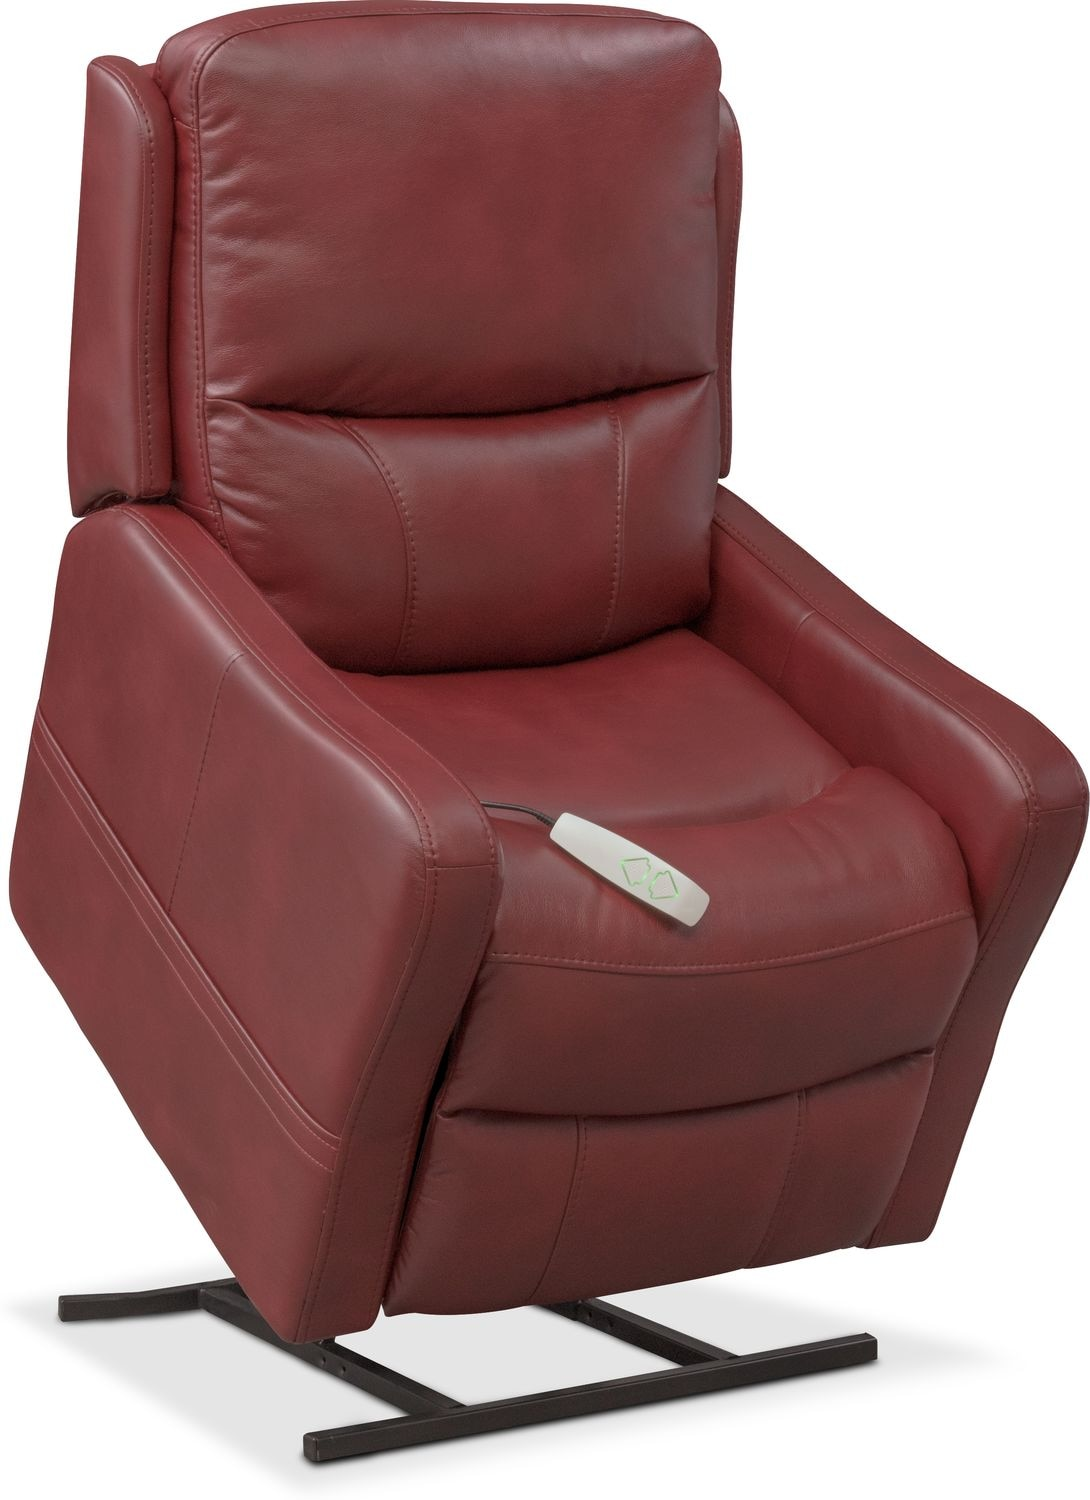 Cabo Power Lift Recliner   Red